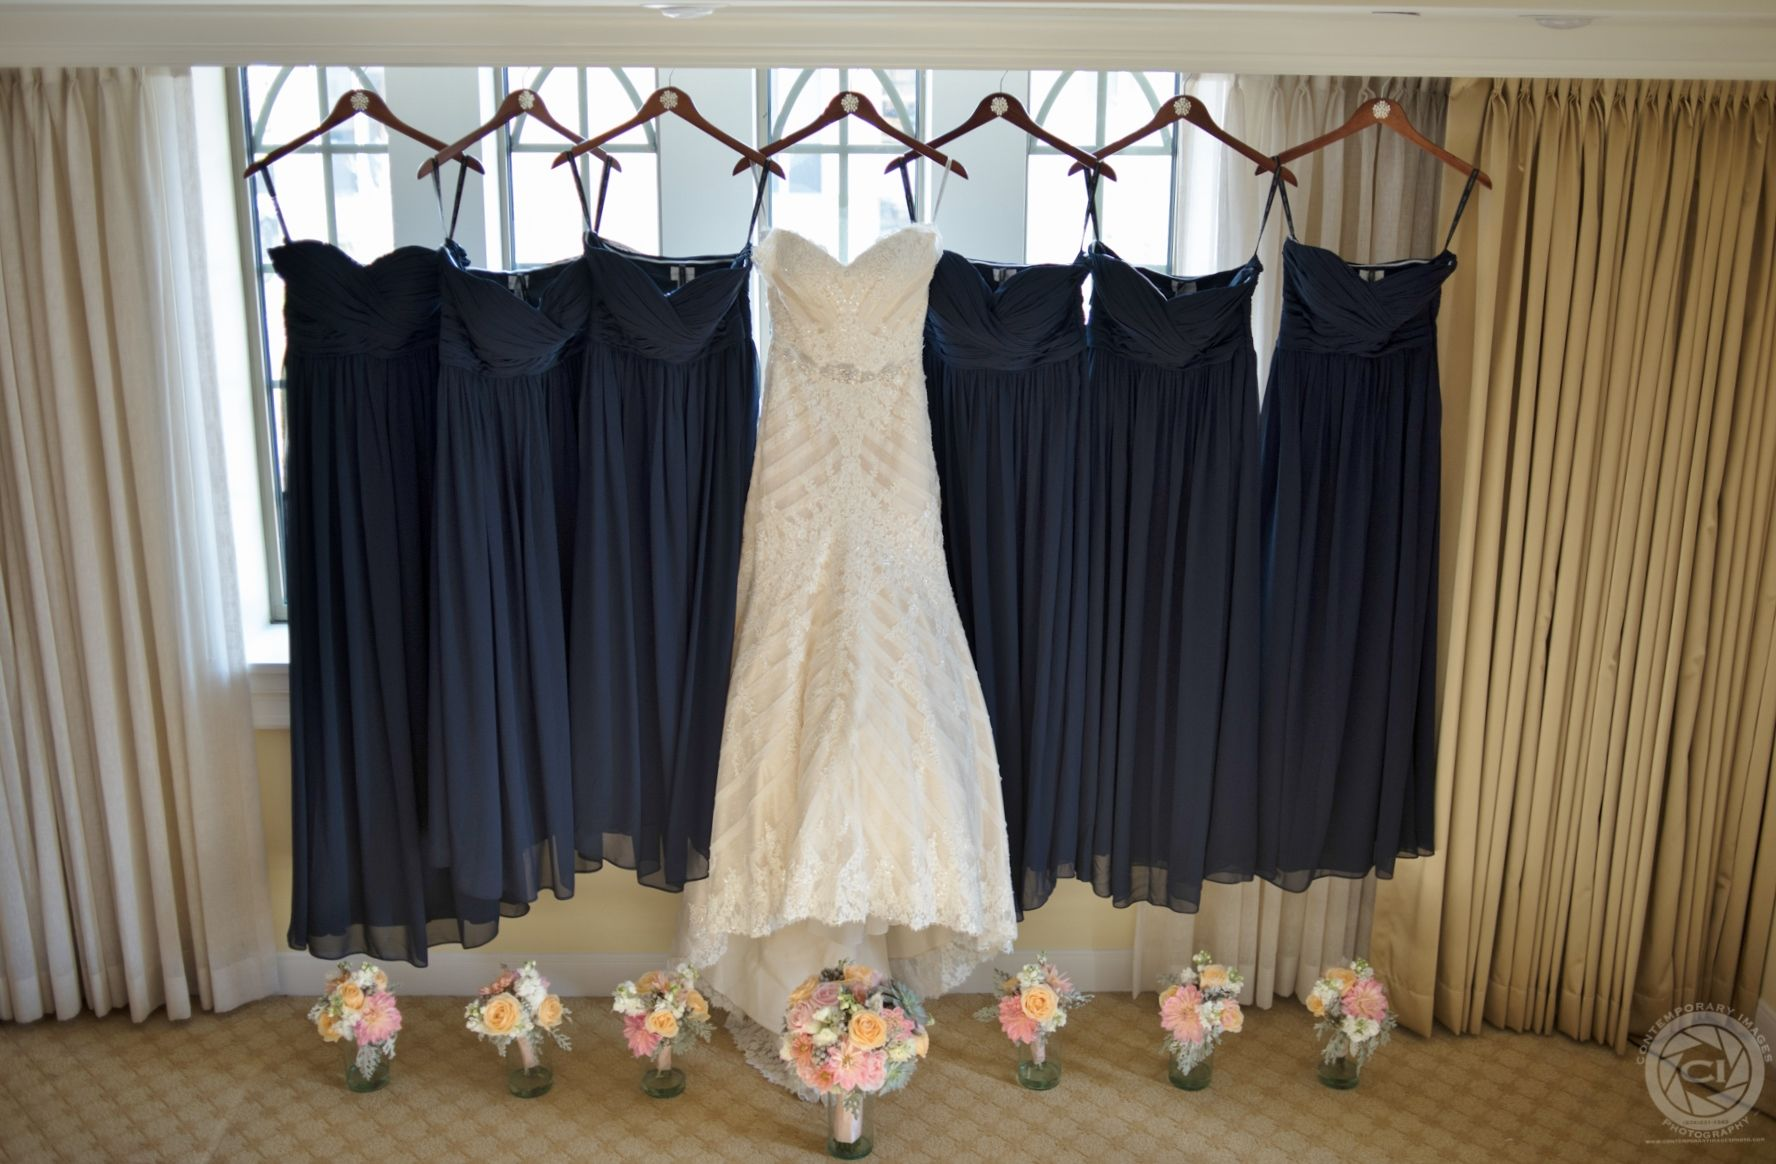 Navy blue chiffon bridesmaid dresses hanging next to wedding gown Loved the matching hangers for